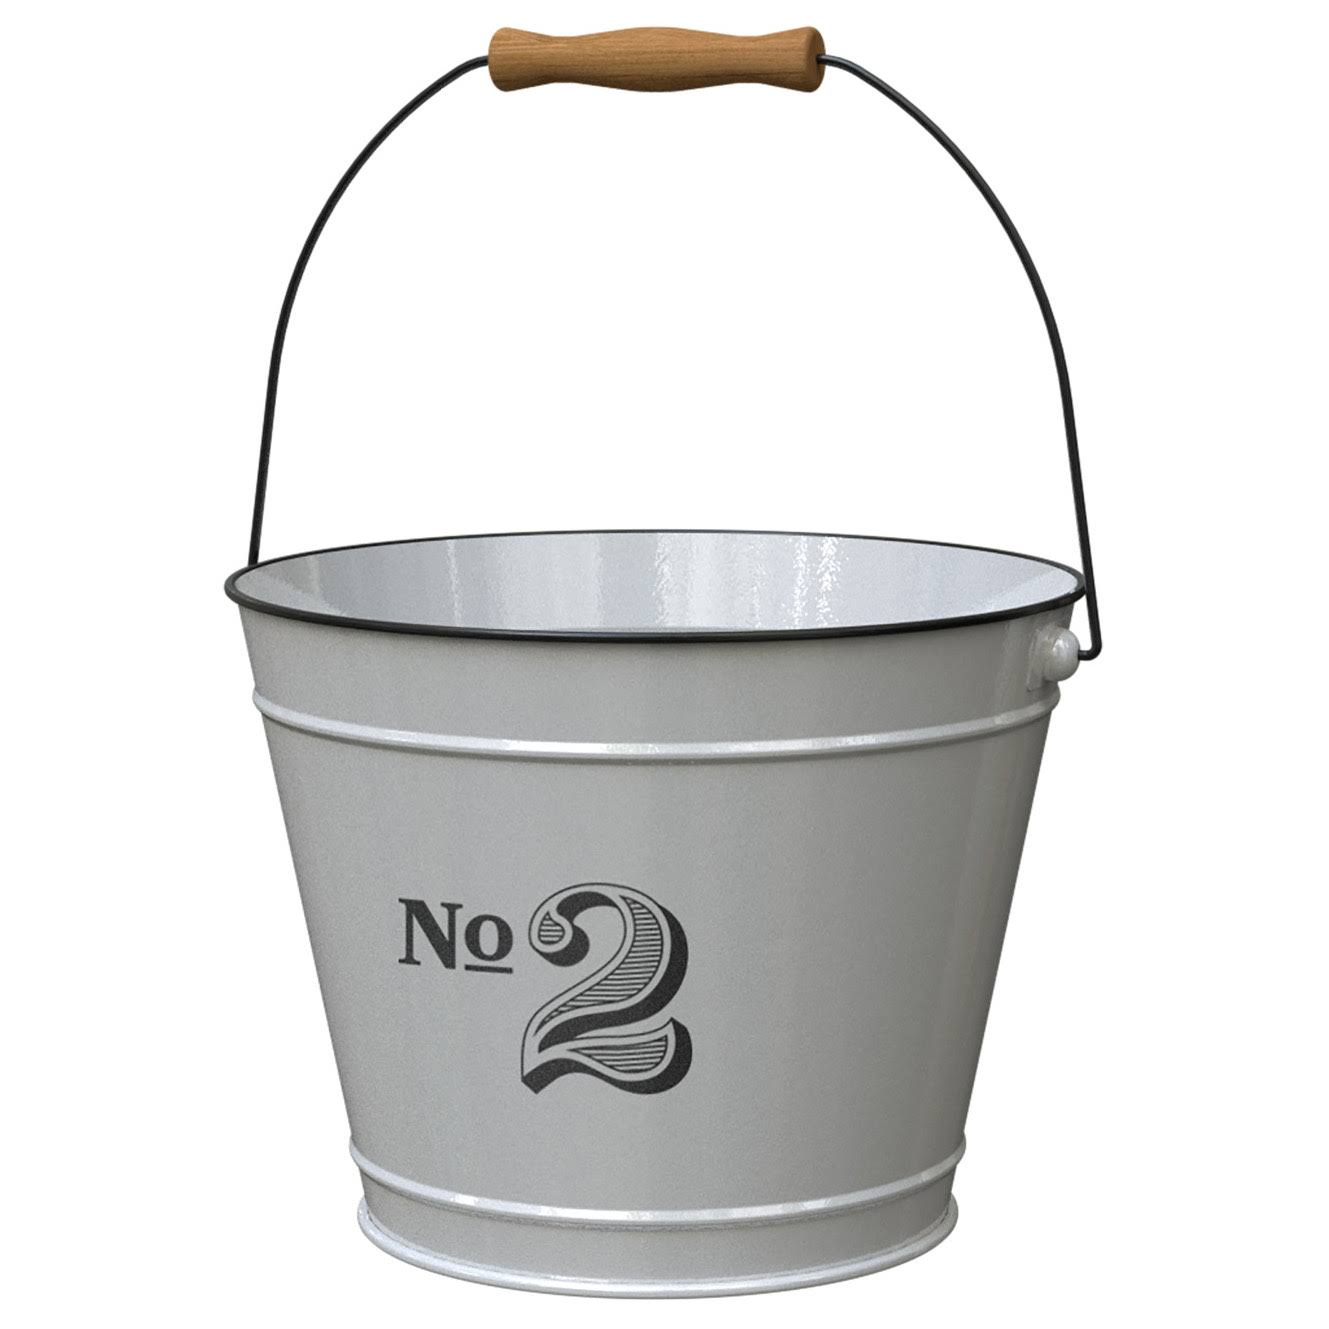 "Panacea No. 2 Vintage 10"" Milkhouse Bucket Planter"